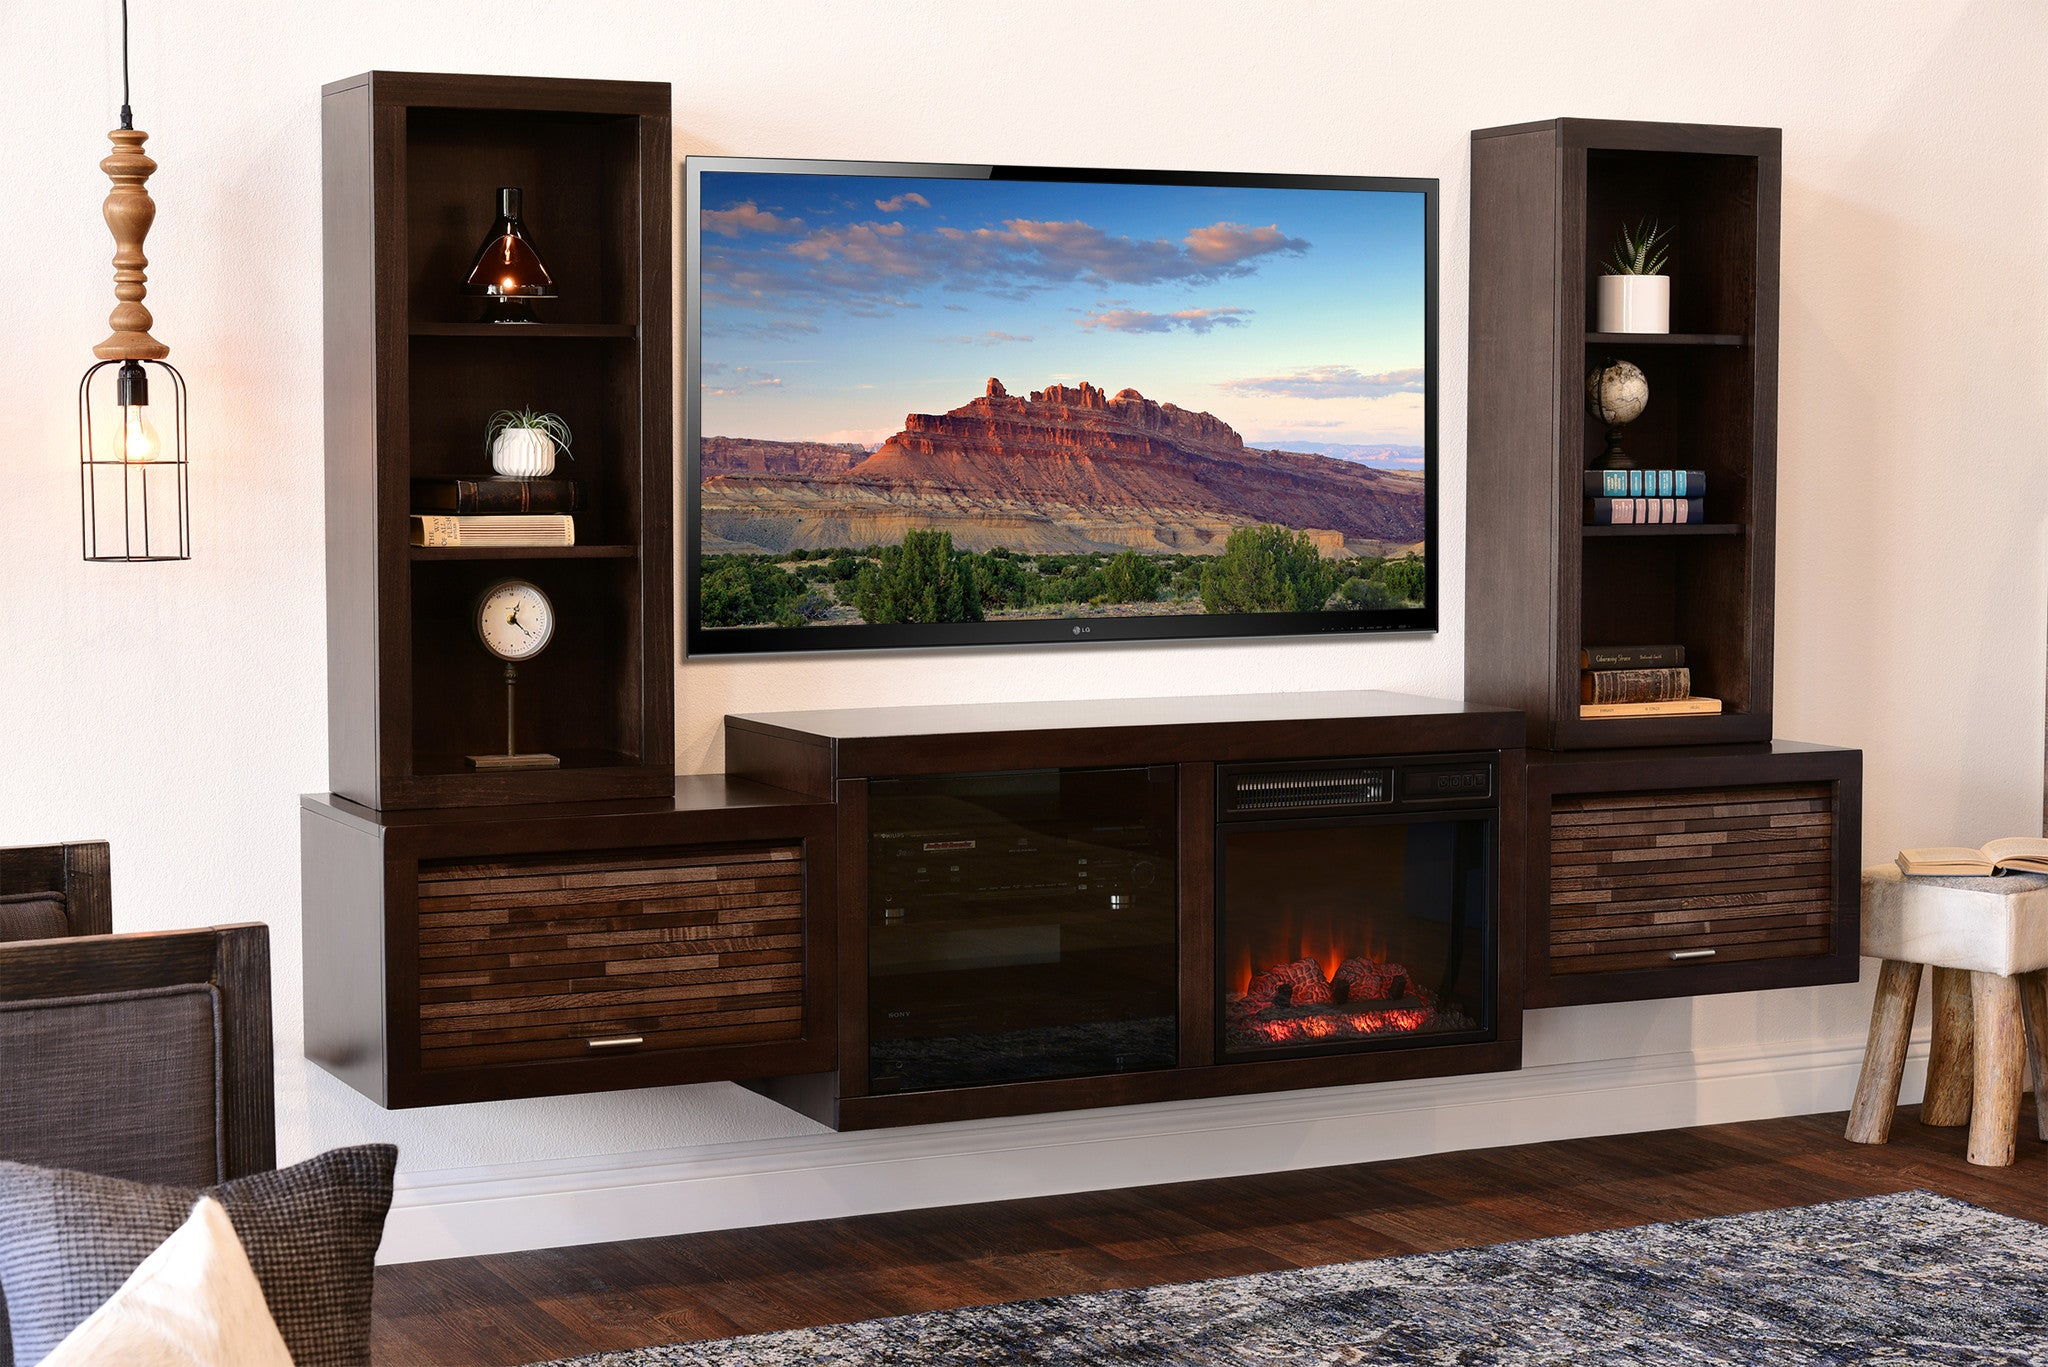 Entertainment Center With Fireplace Heater Part - 16: Wall Mount Fireplace TV Stand Entertainment Center - ECO GEO Espresso